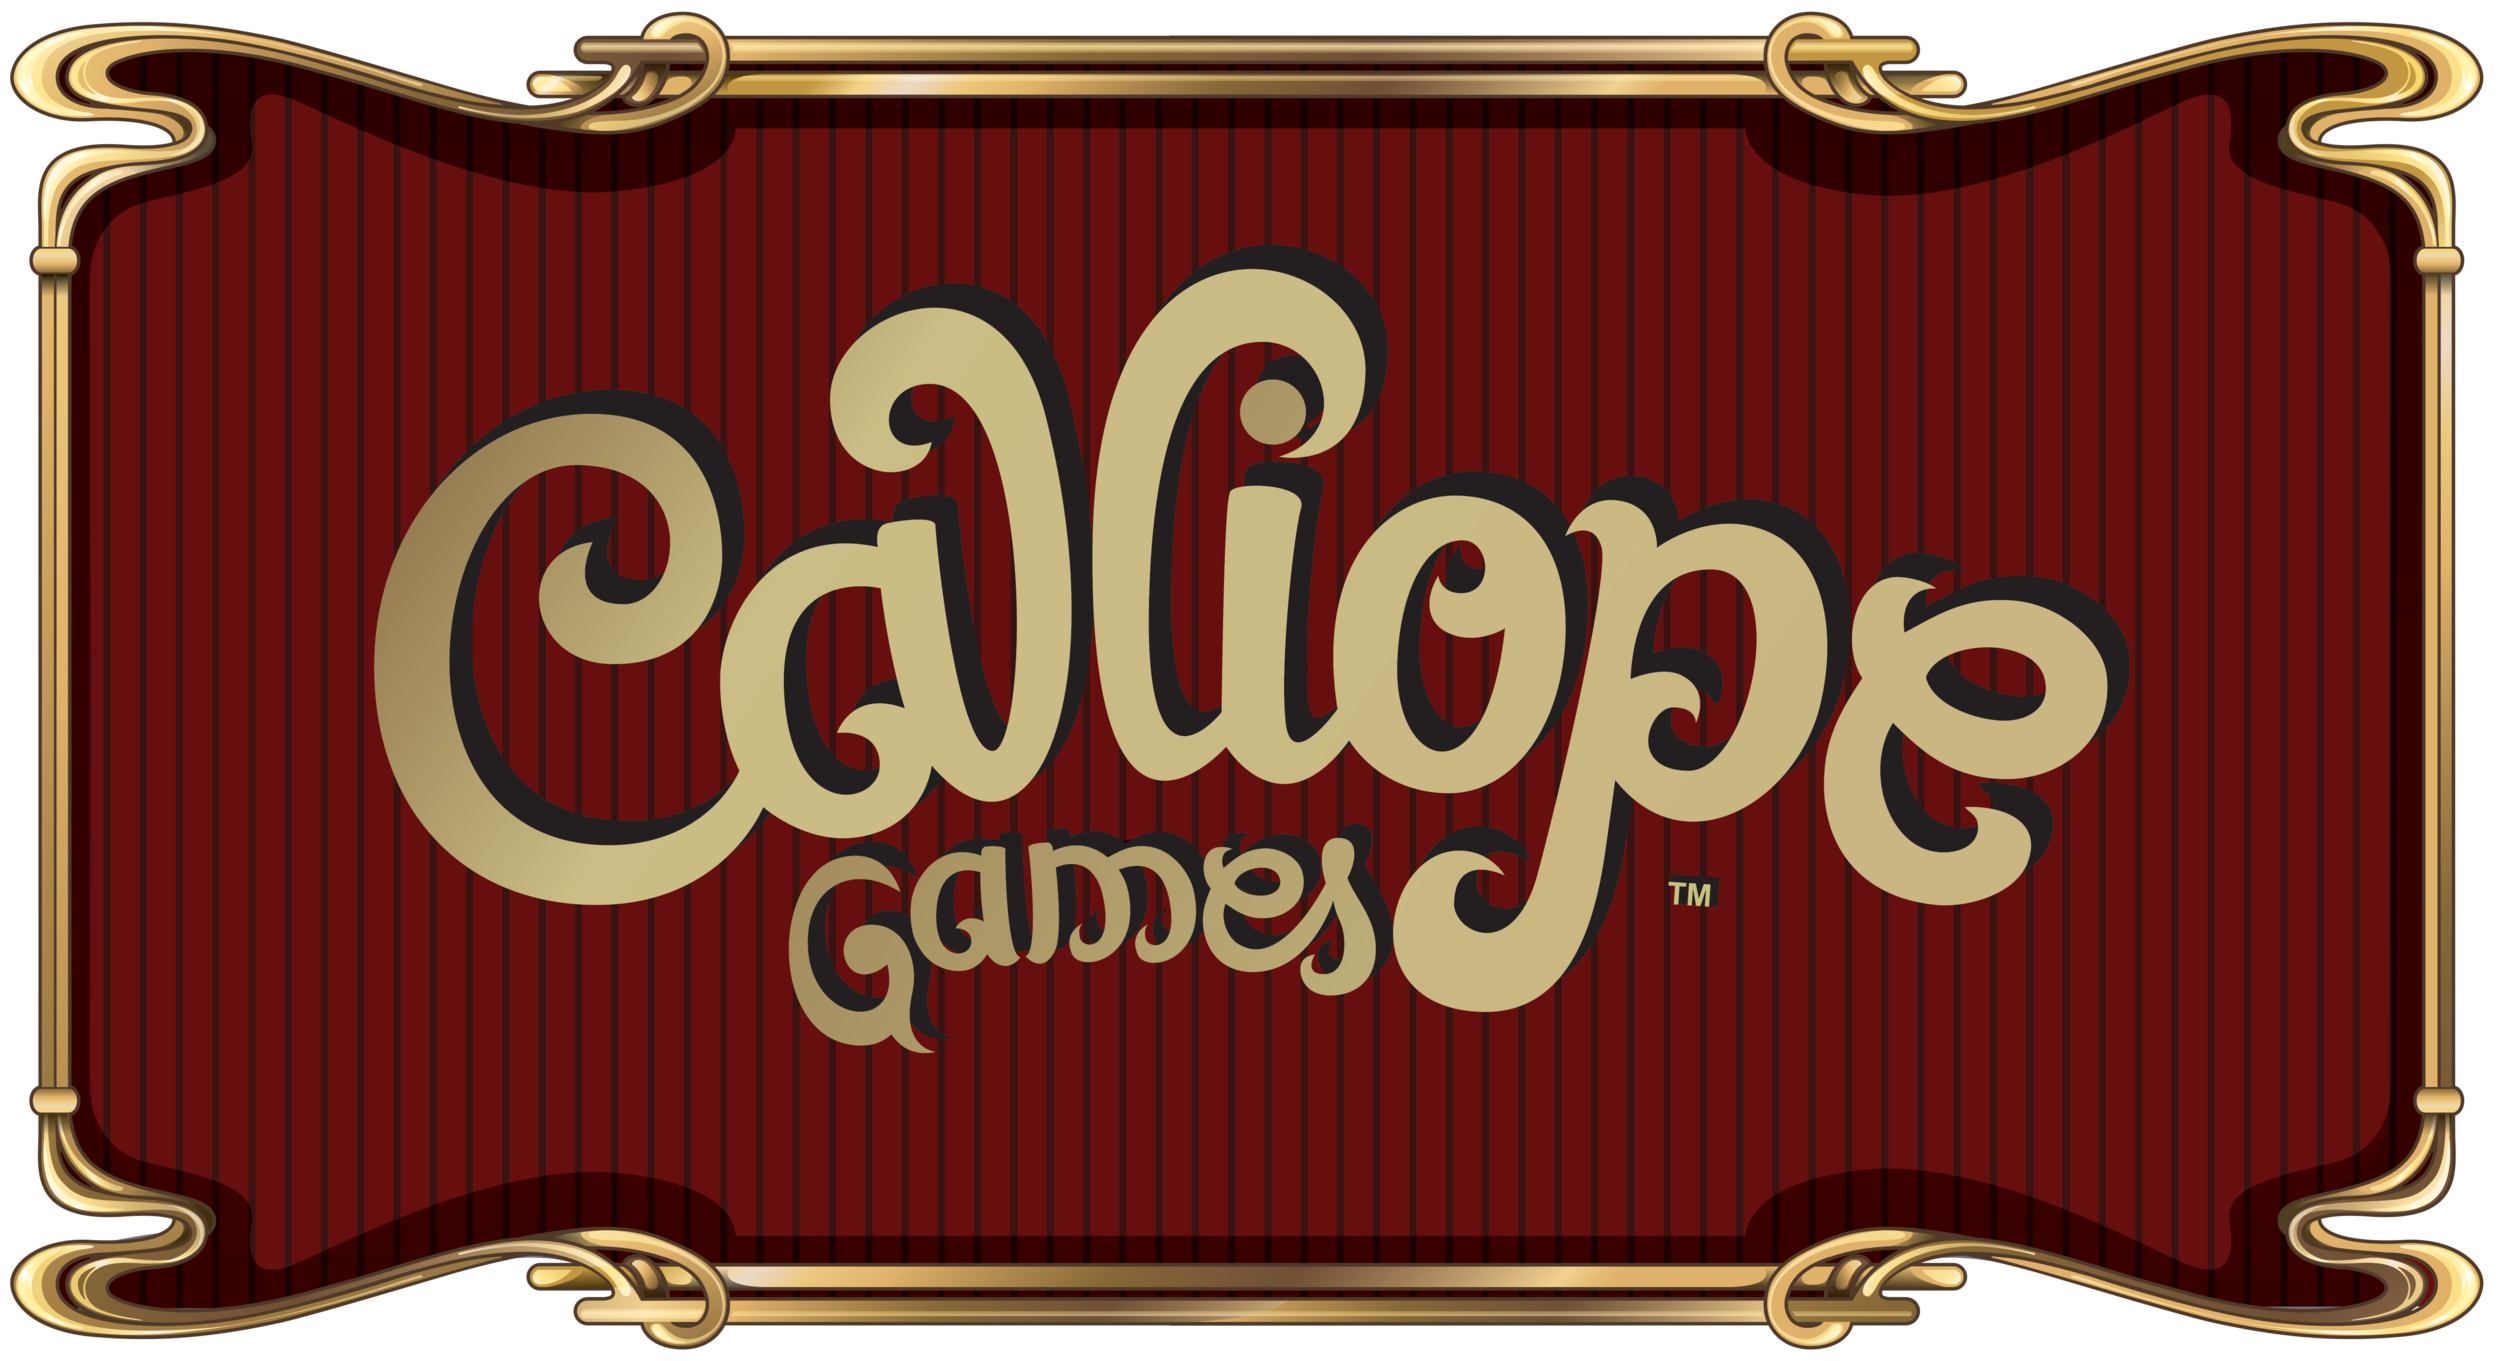 Calliope_logo_red.png